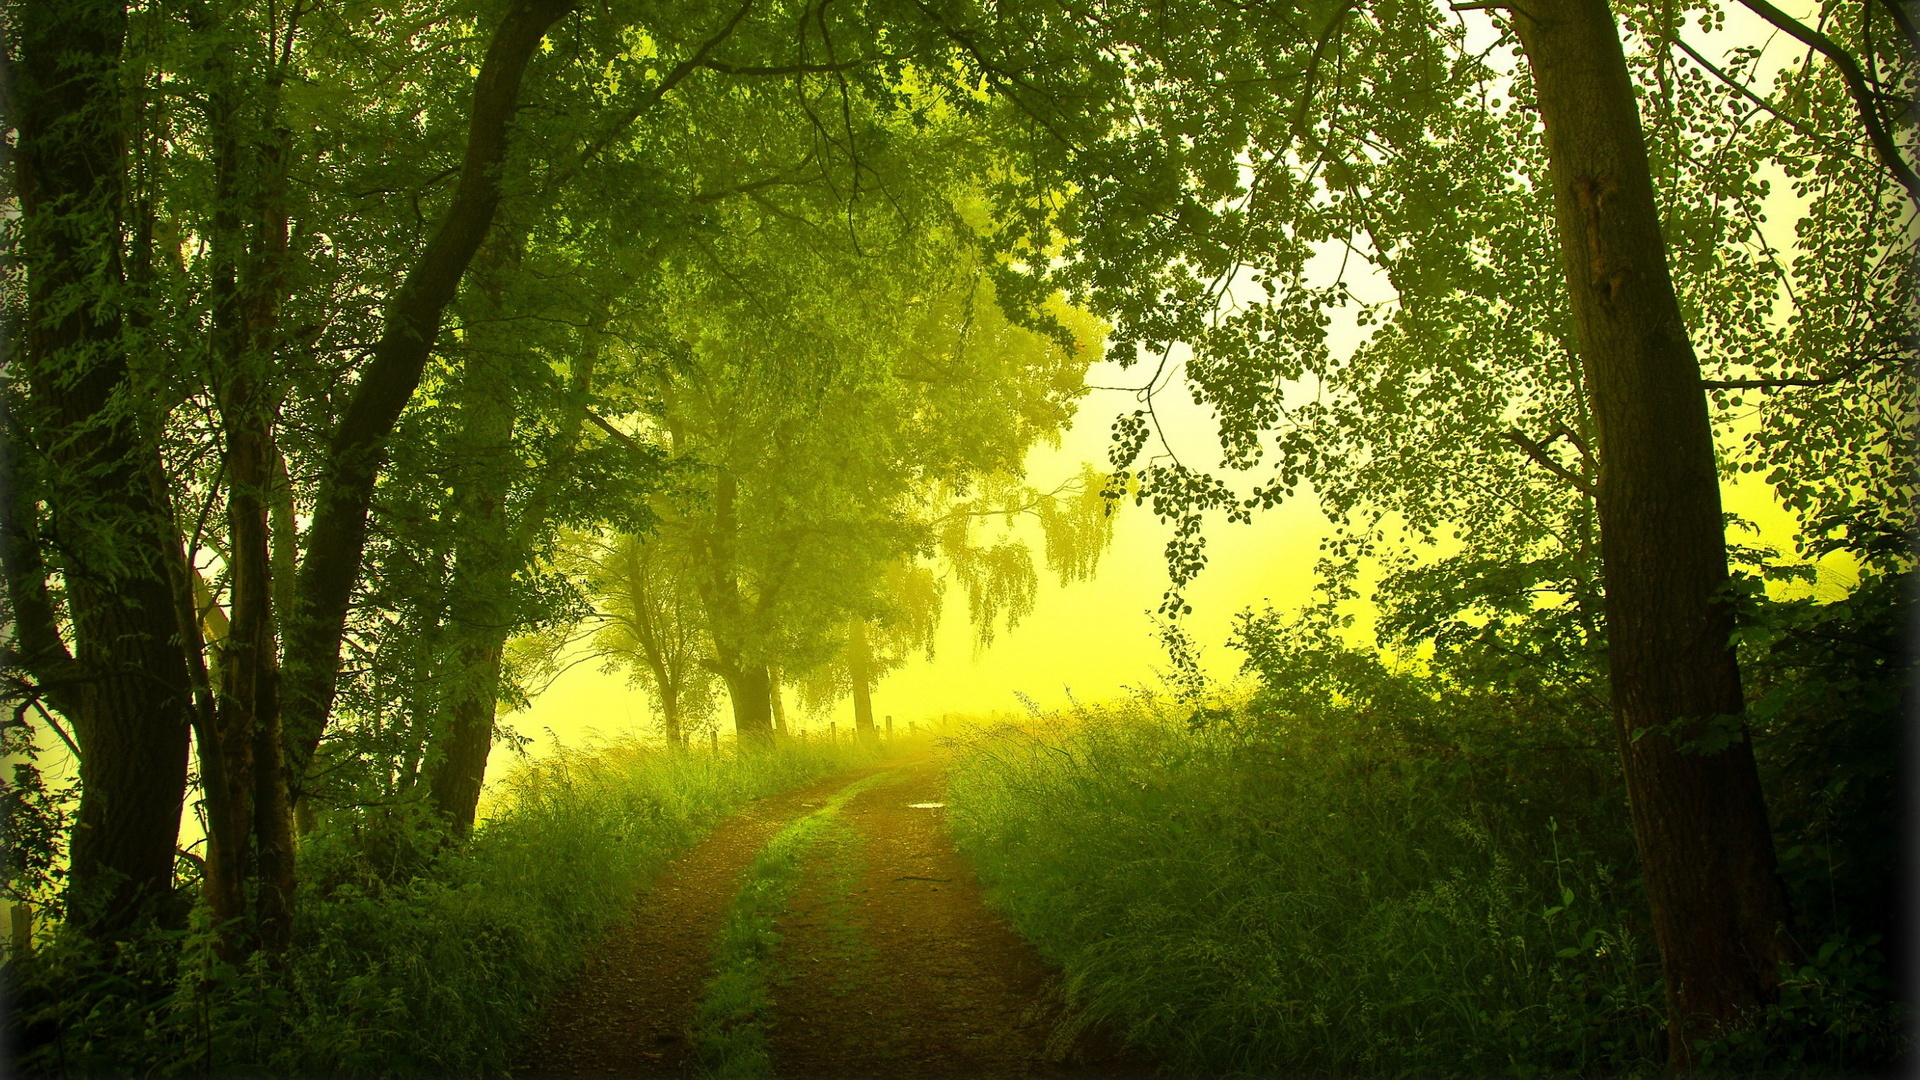 Earth - Forest  Landscape Path Pathway Road Fog Mist Tree Wallpaper